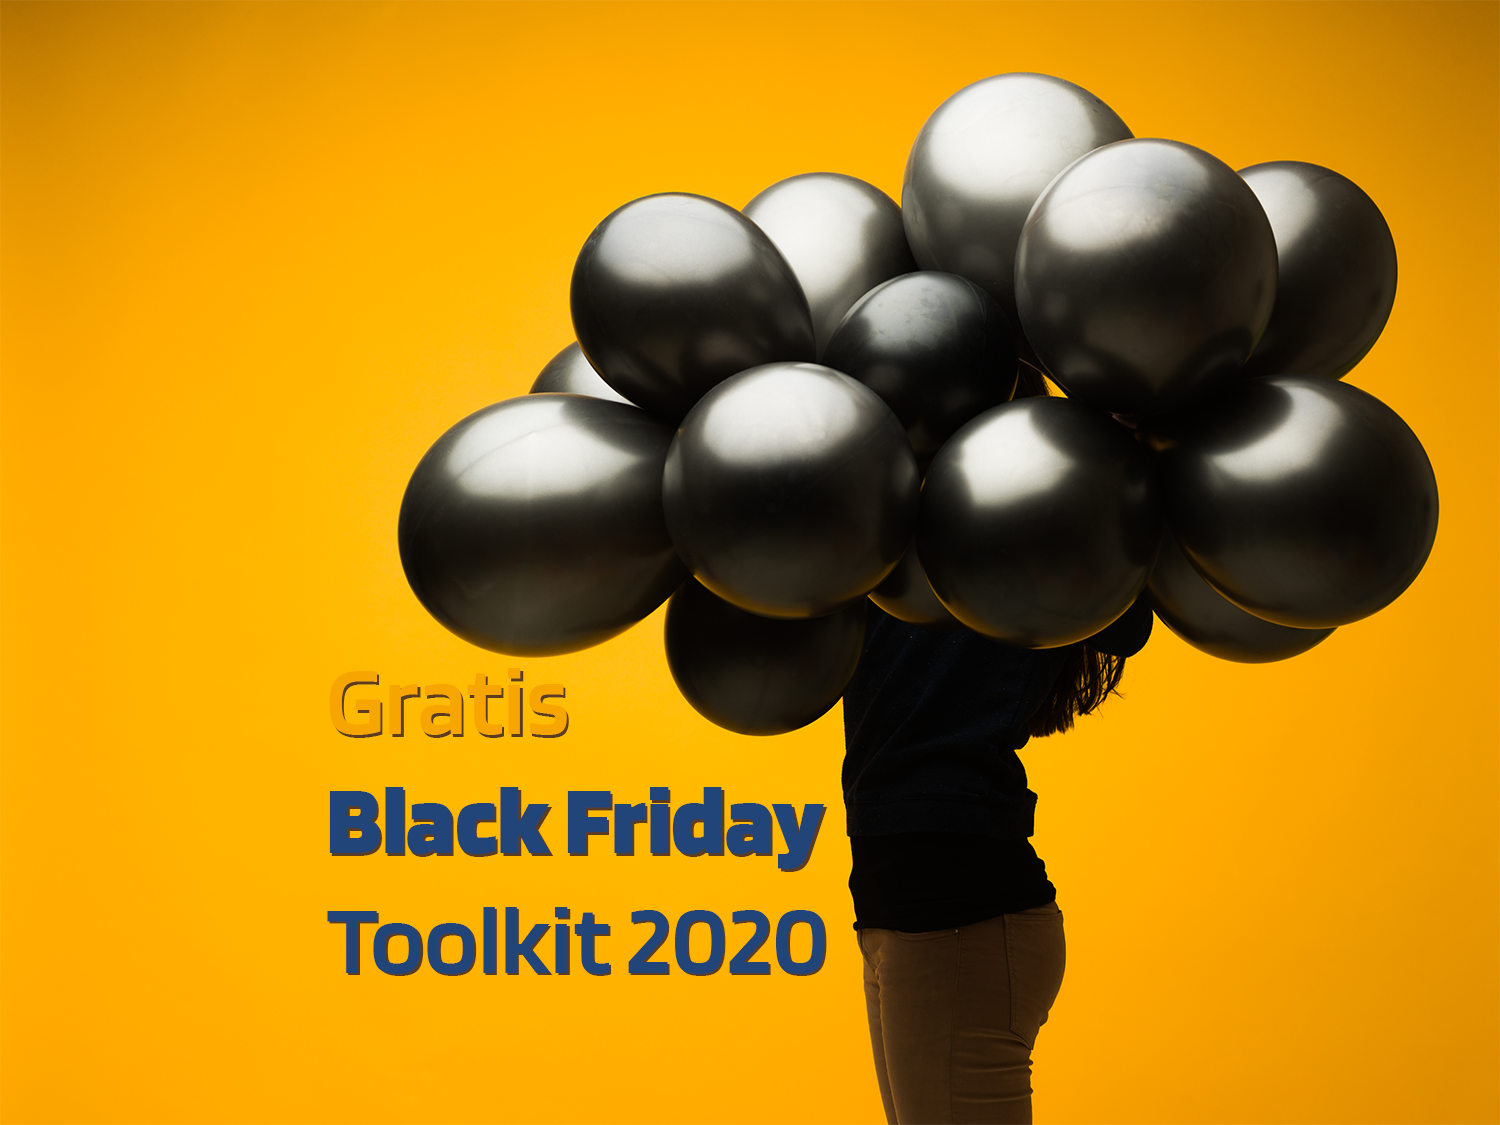 Gratis Black Friday Toolkit 2020 - Social Media Mannetje